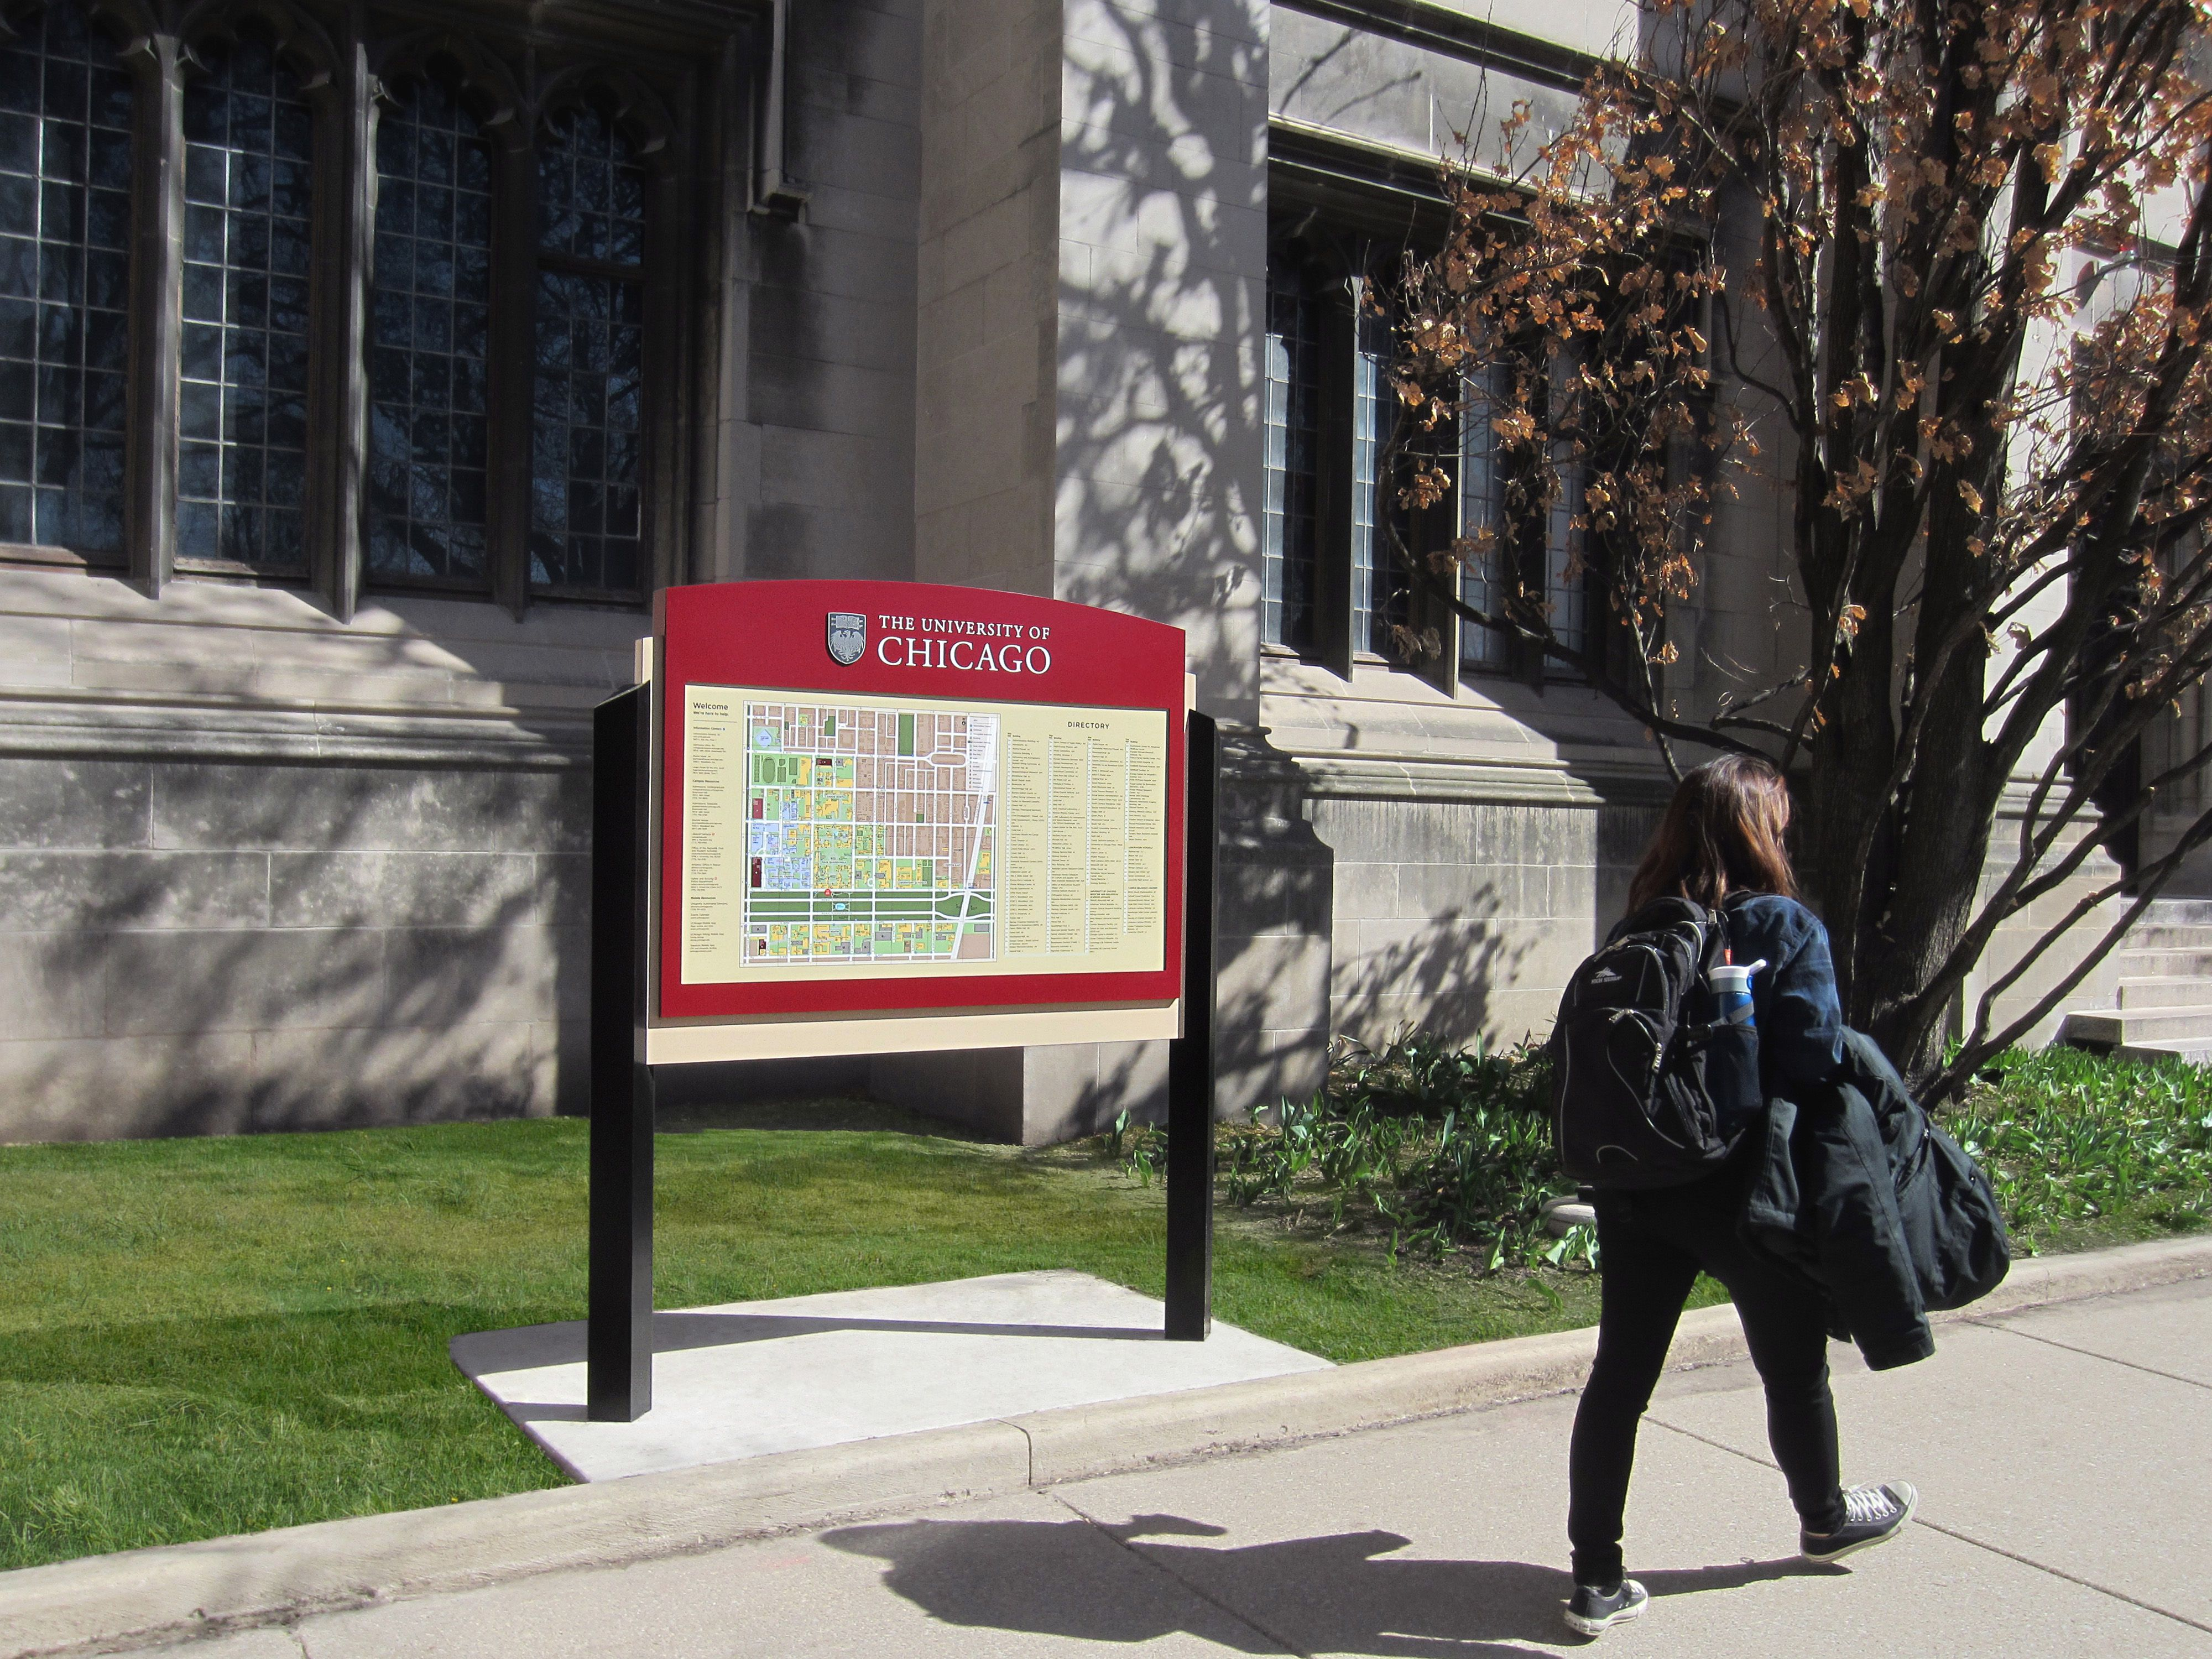 Wayfinding map sign at the University of Chicago